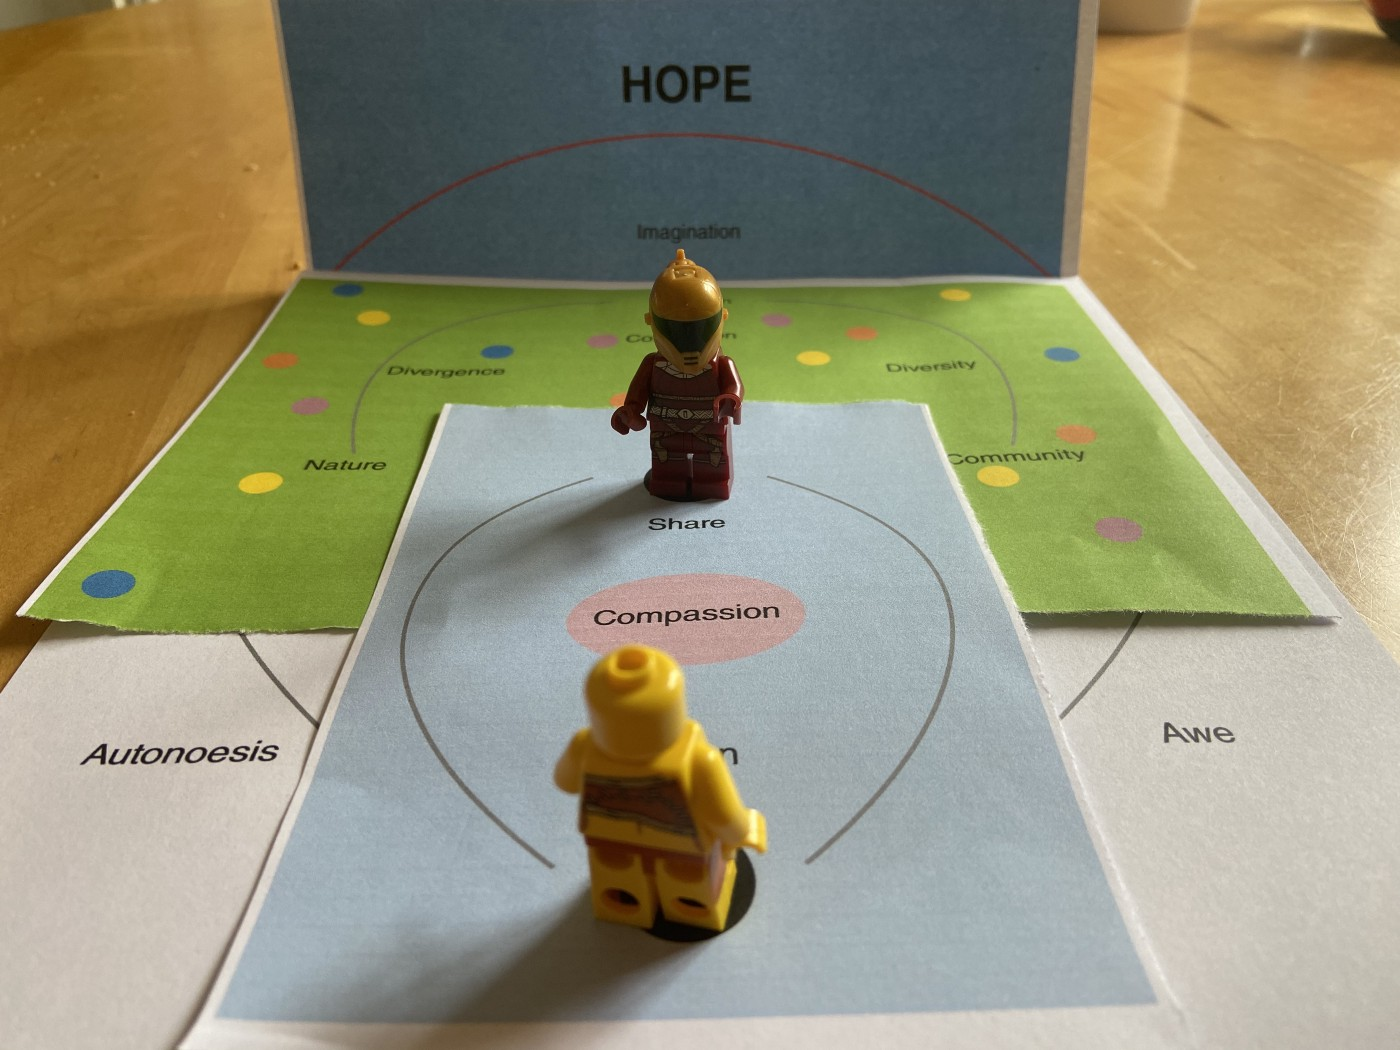 Two Lego minifigs look at each other while standing on pieces of printed paper that represent ideas about Hope